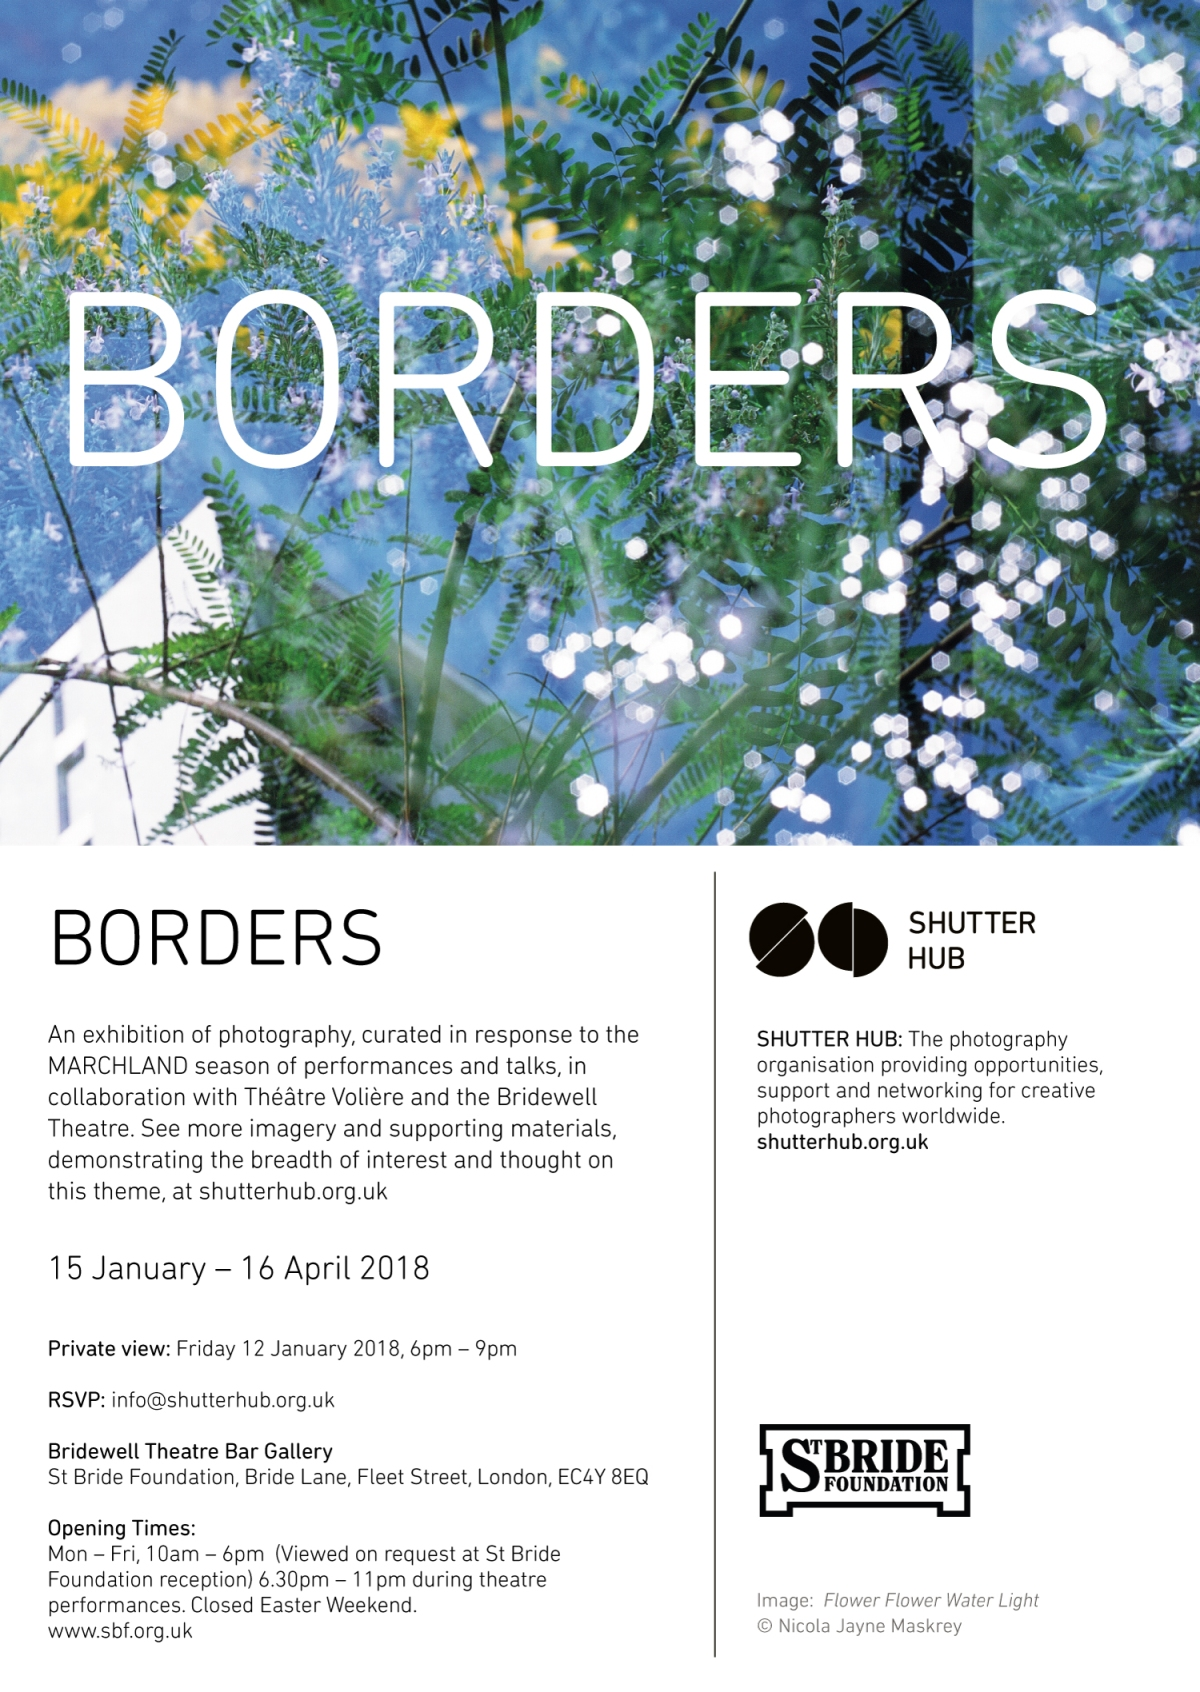 Details of the Shutterhub Borders exhibition